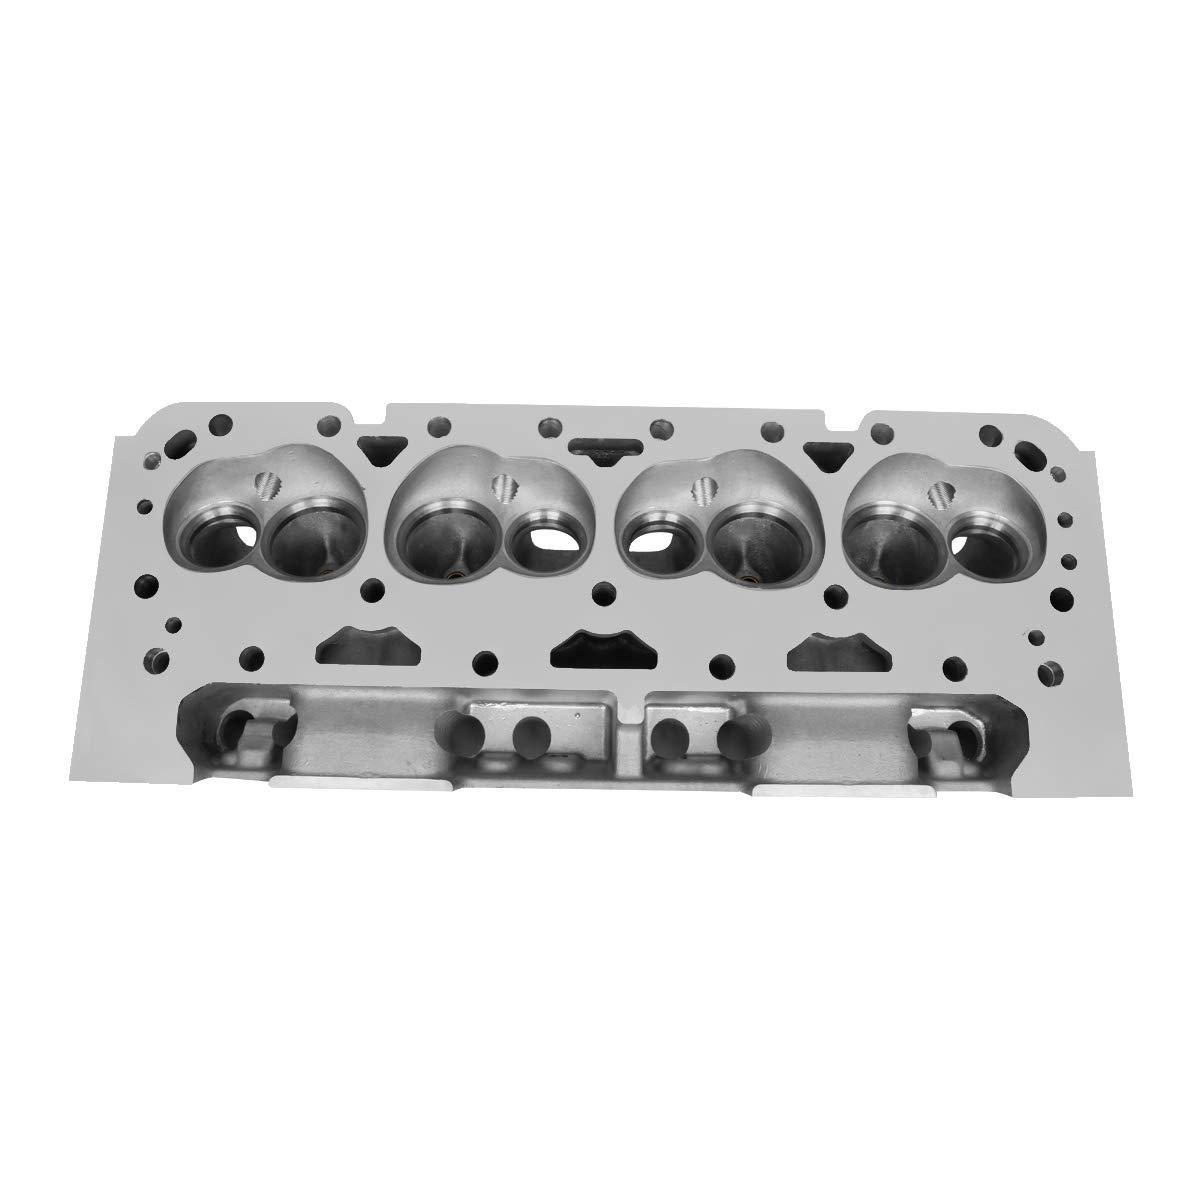 For Chevy Small Block 302//327//350//383//400 SBC 200cc Intake 68cc Straight Aluminum Bare Cylinder Head